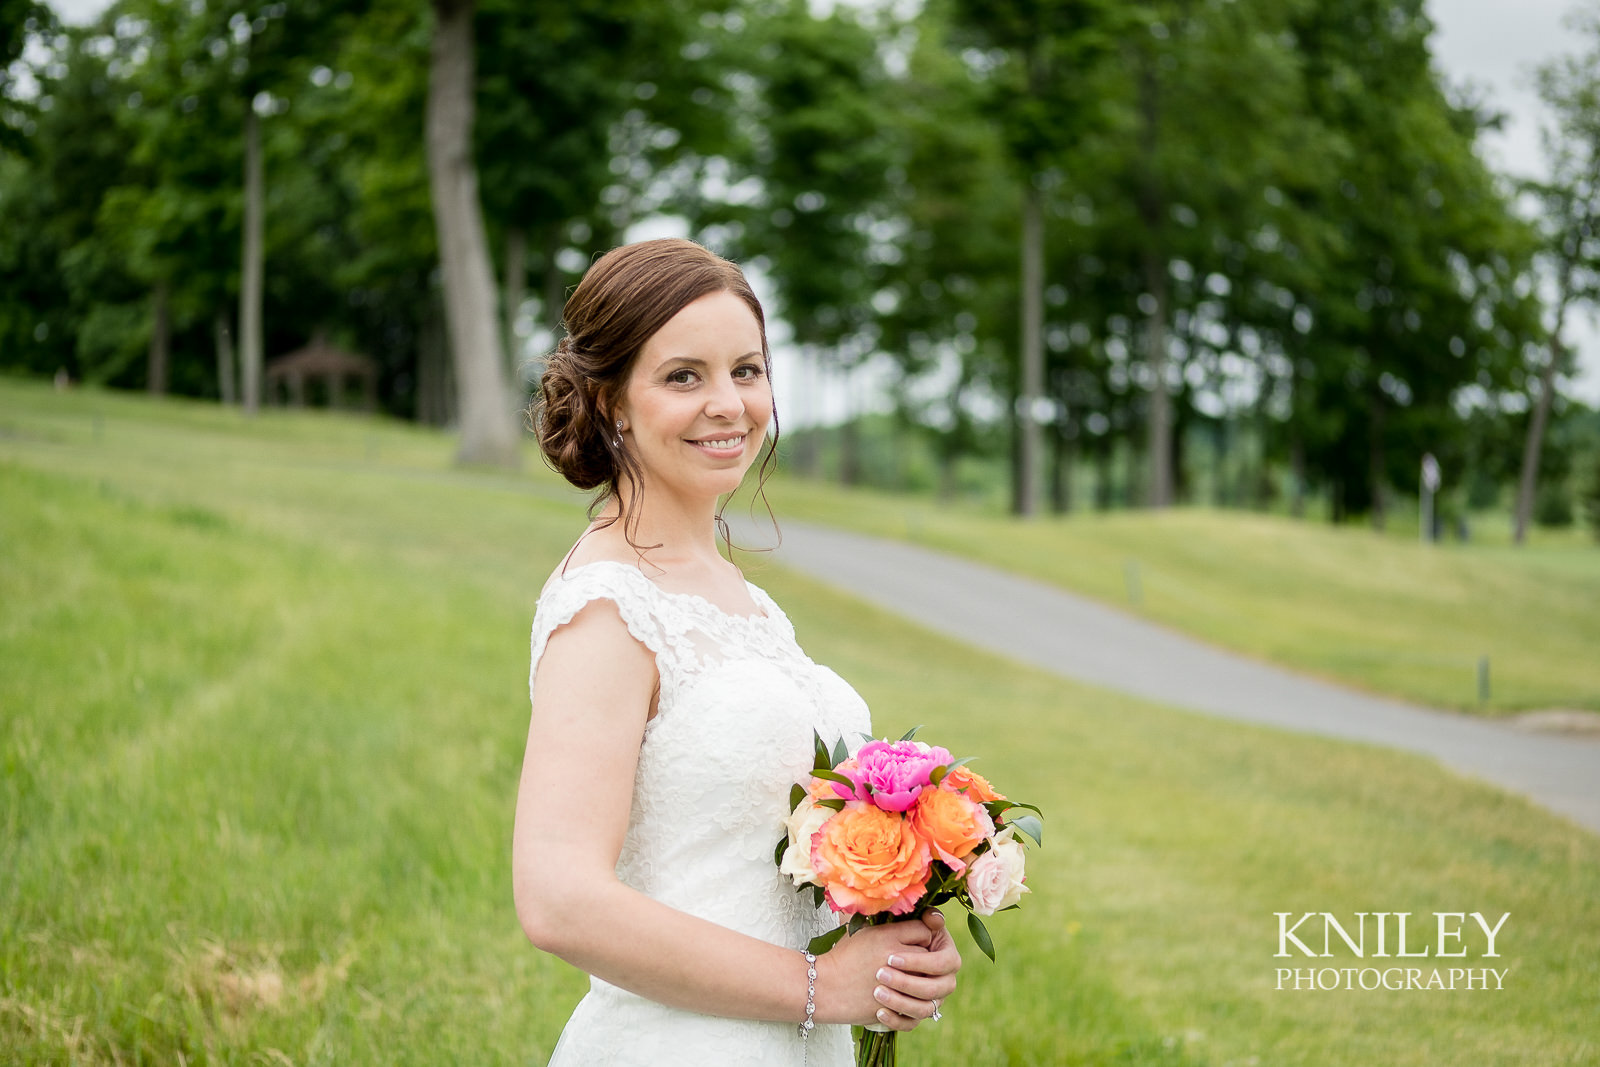 027 - Ravenwood Golf Club wedding pictures - Rochester NY - Kniley Photography - XT2A0671.jpg